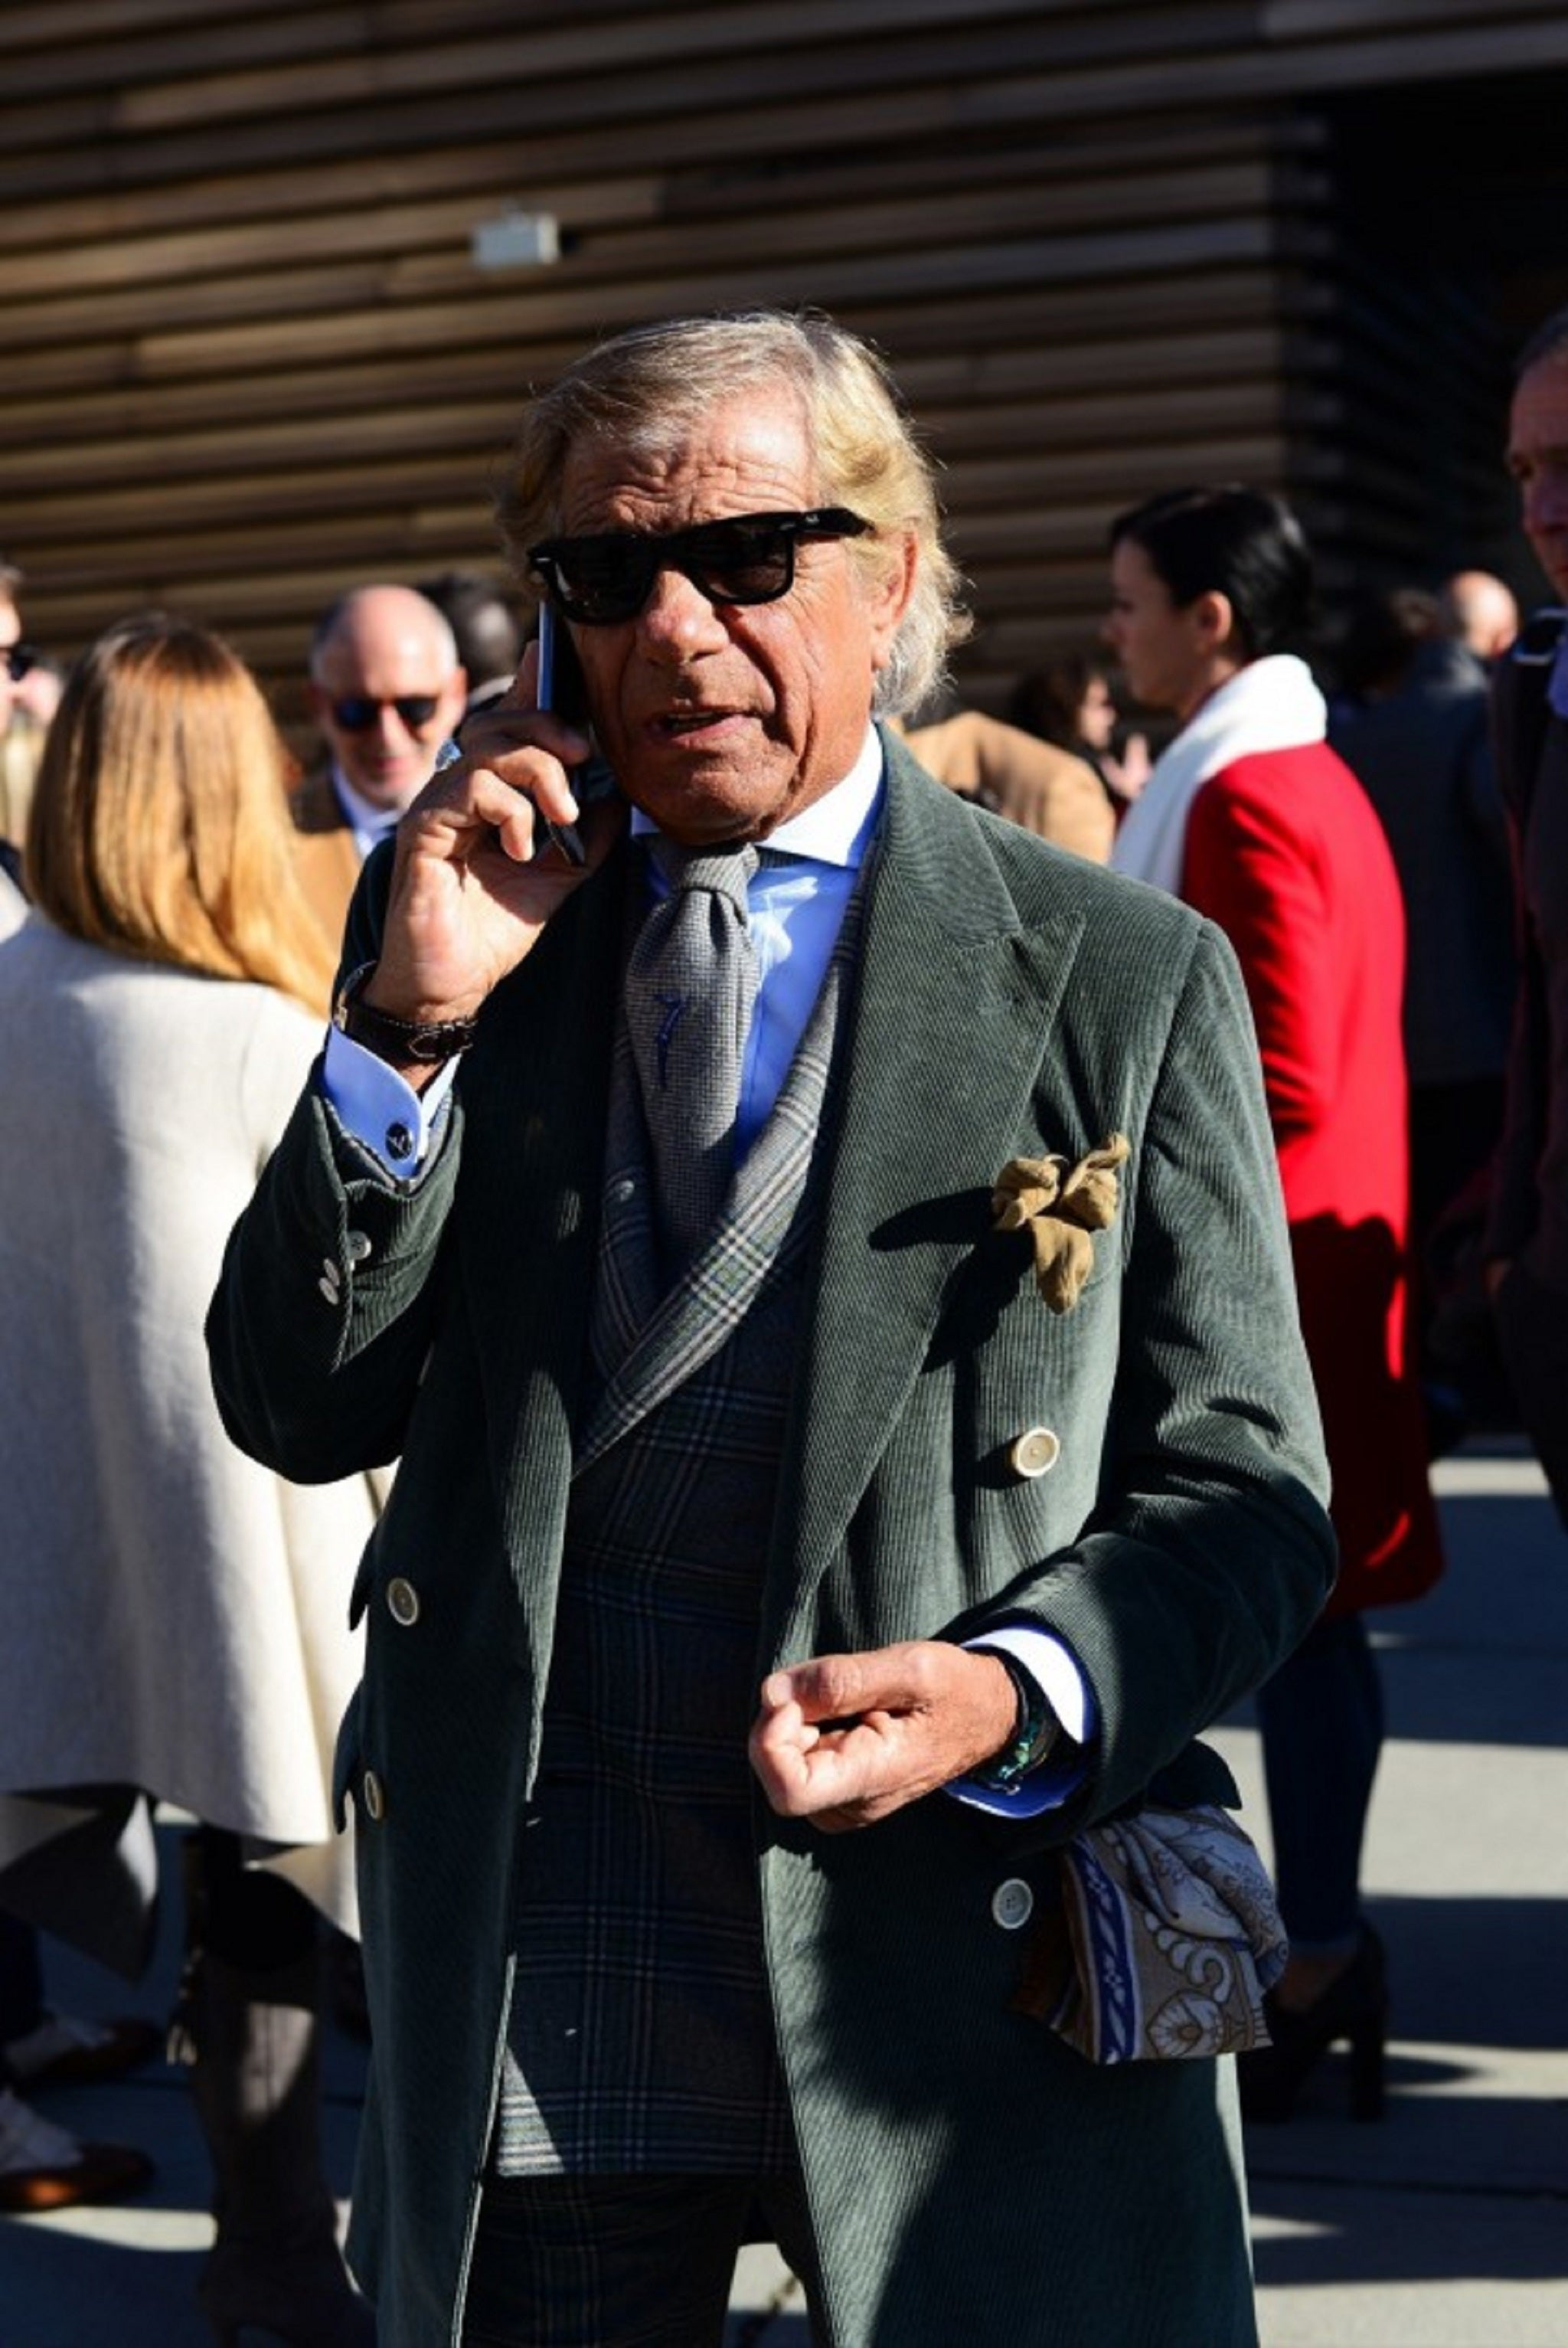 How to tie your tie - Pitti Uomo 89 - Lino Ieluzzi 7-tie